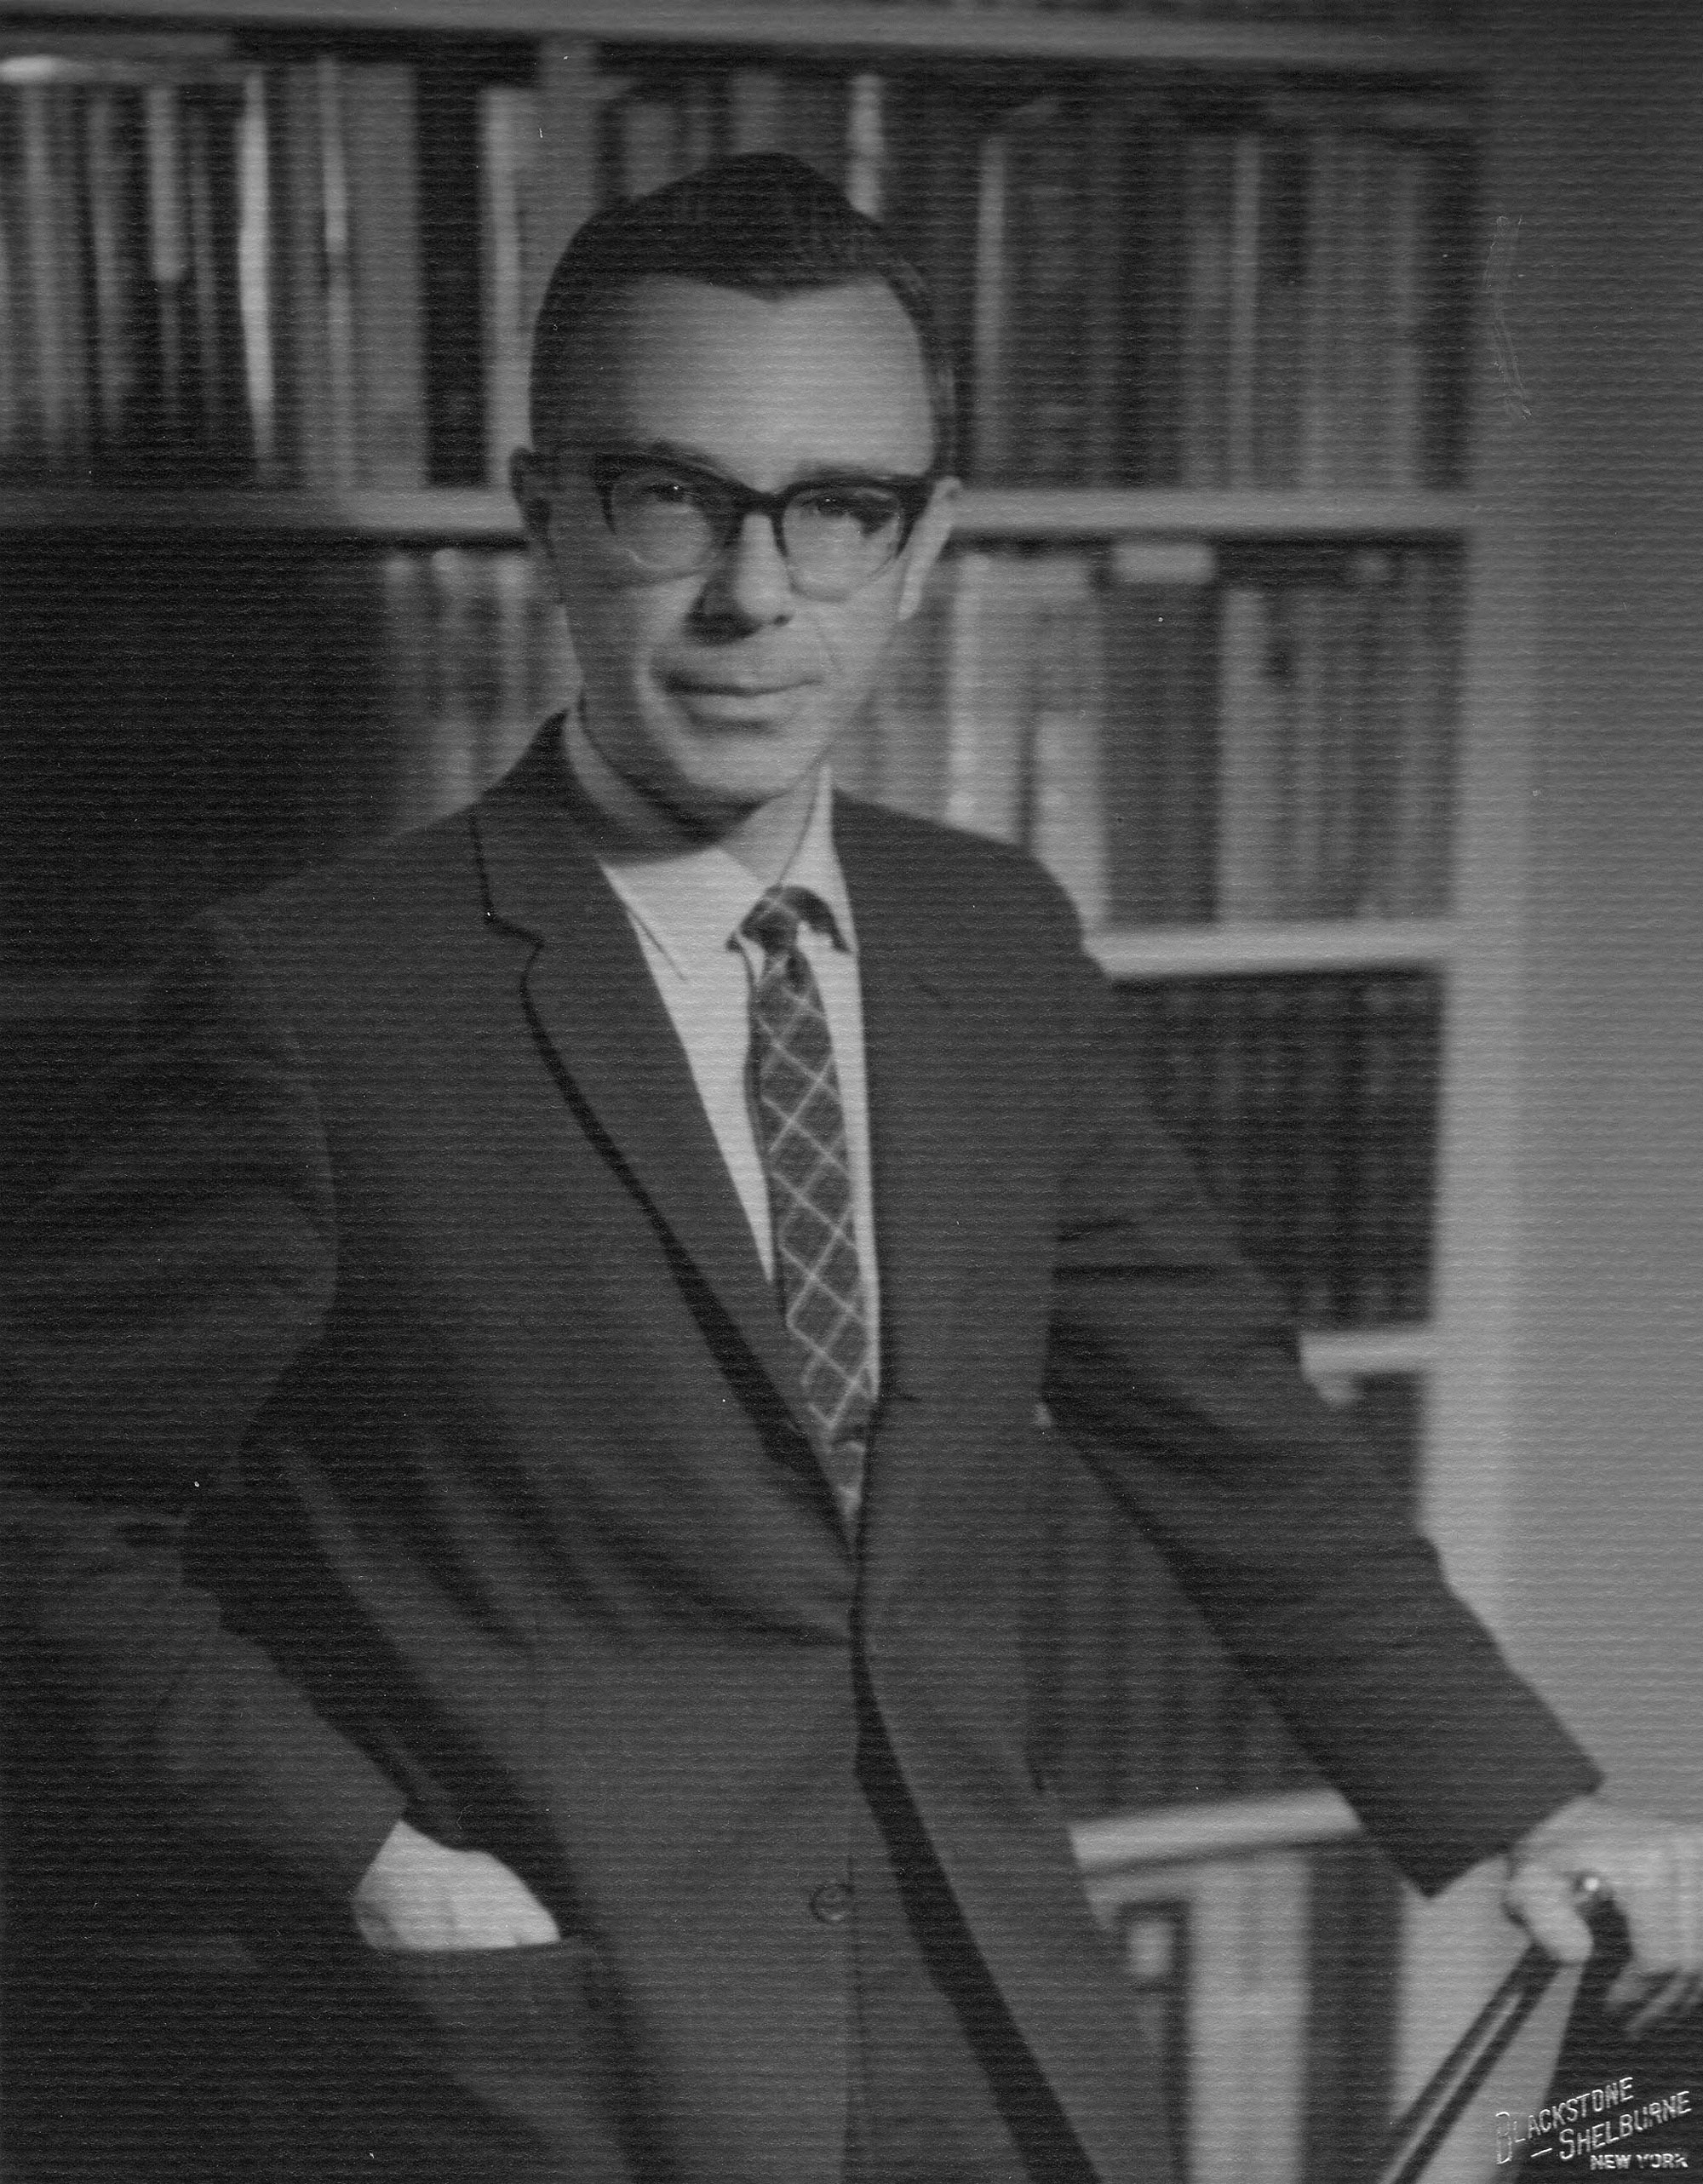 Photo of Robert circa mid-1960s in a coat and tie standing by a bookshelf